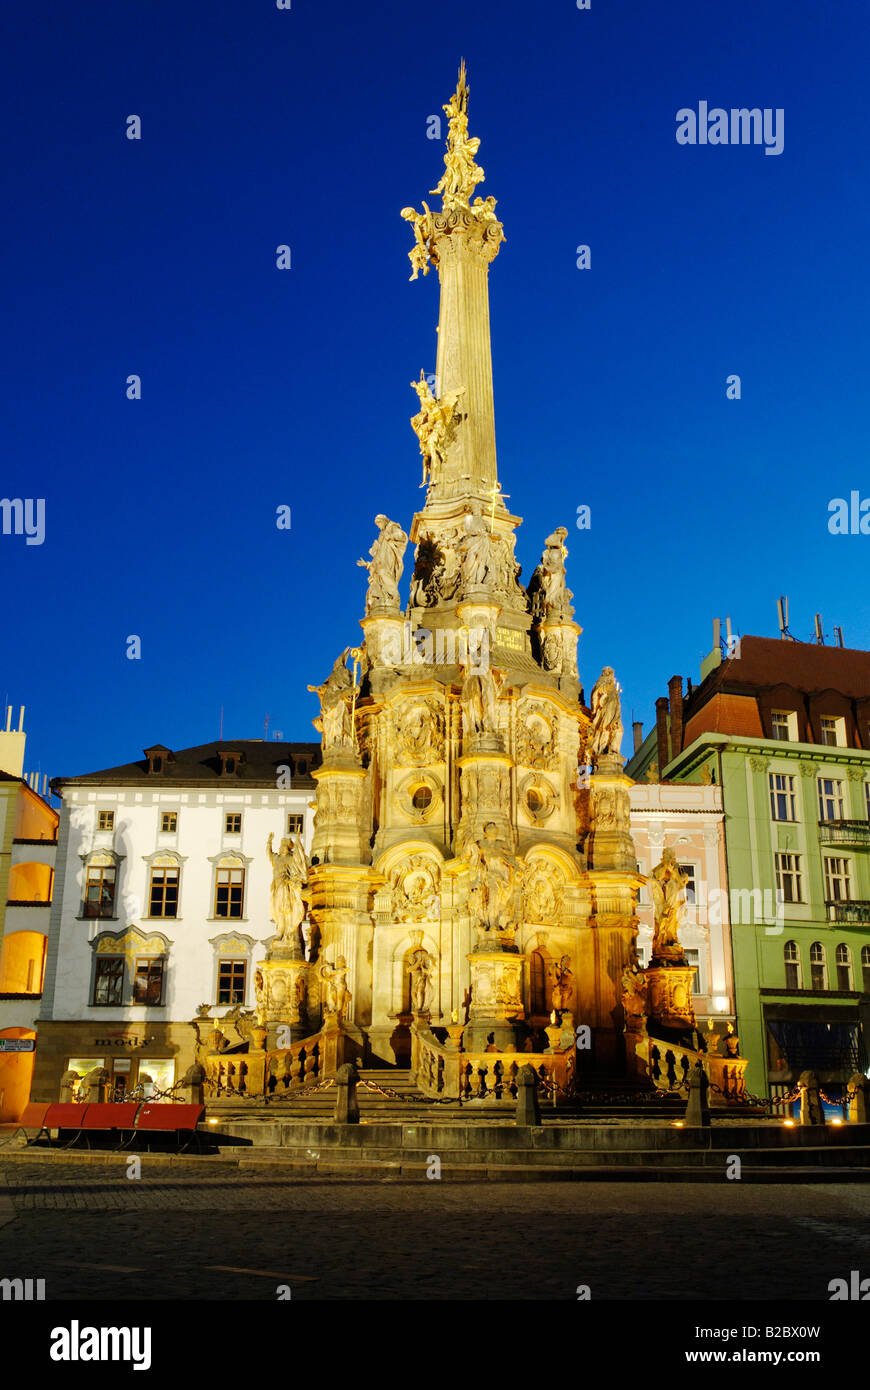 Olomouc city centre with the Holy Trinity Column, a UNESCO World Heritage Site, and Town Hall, Olomouc, North Moravia - Stock Image